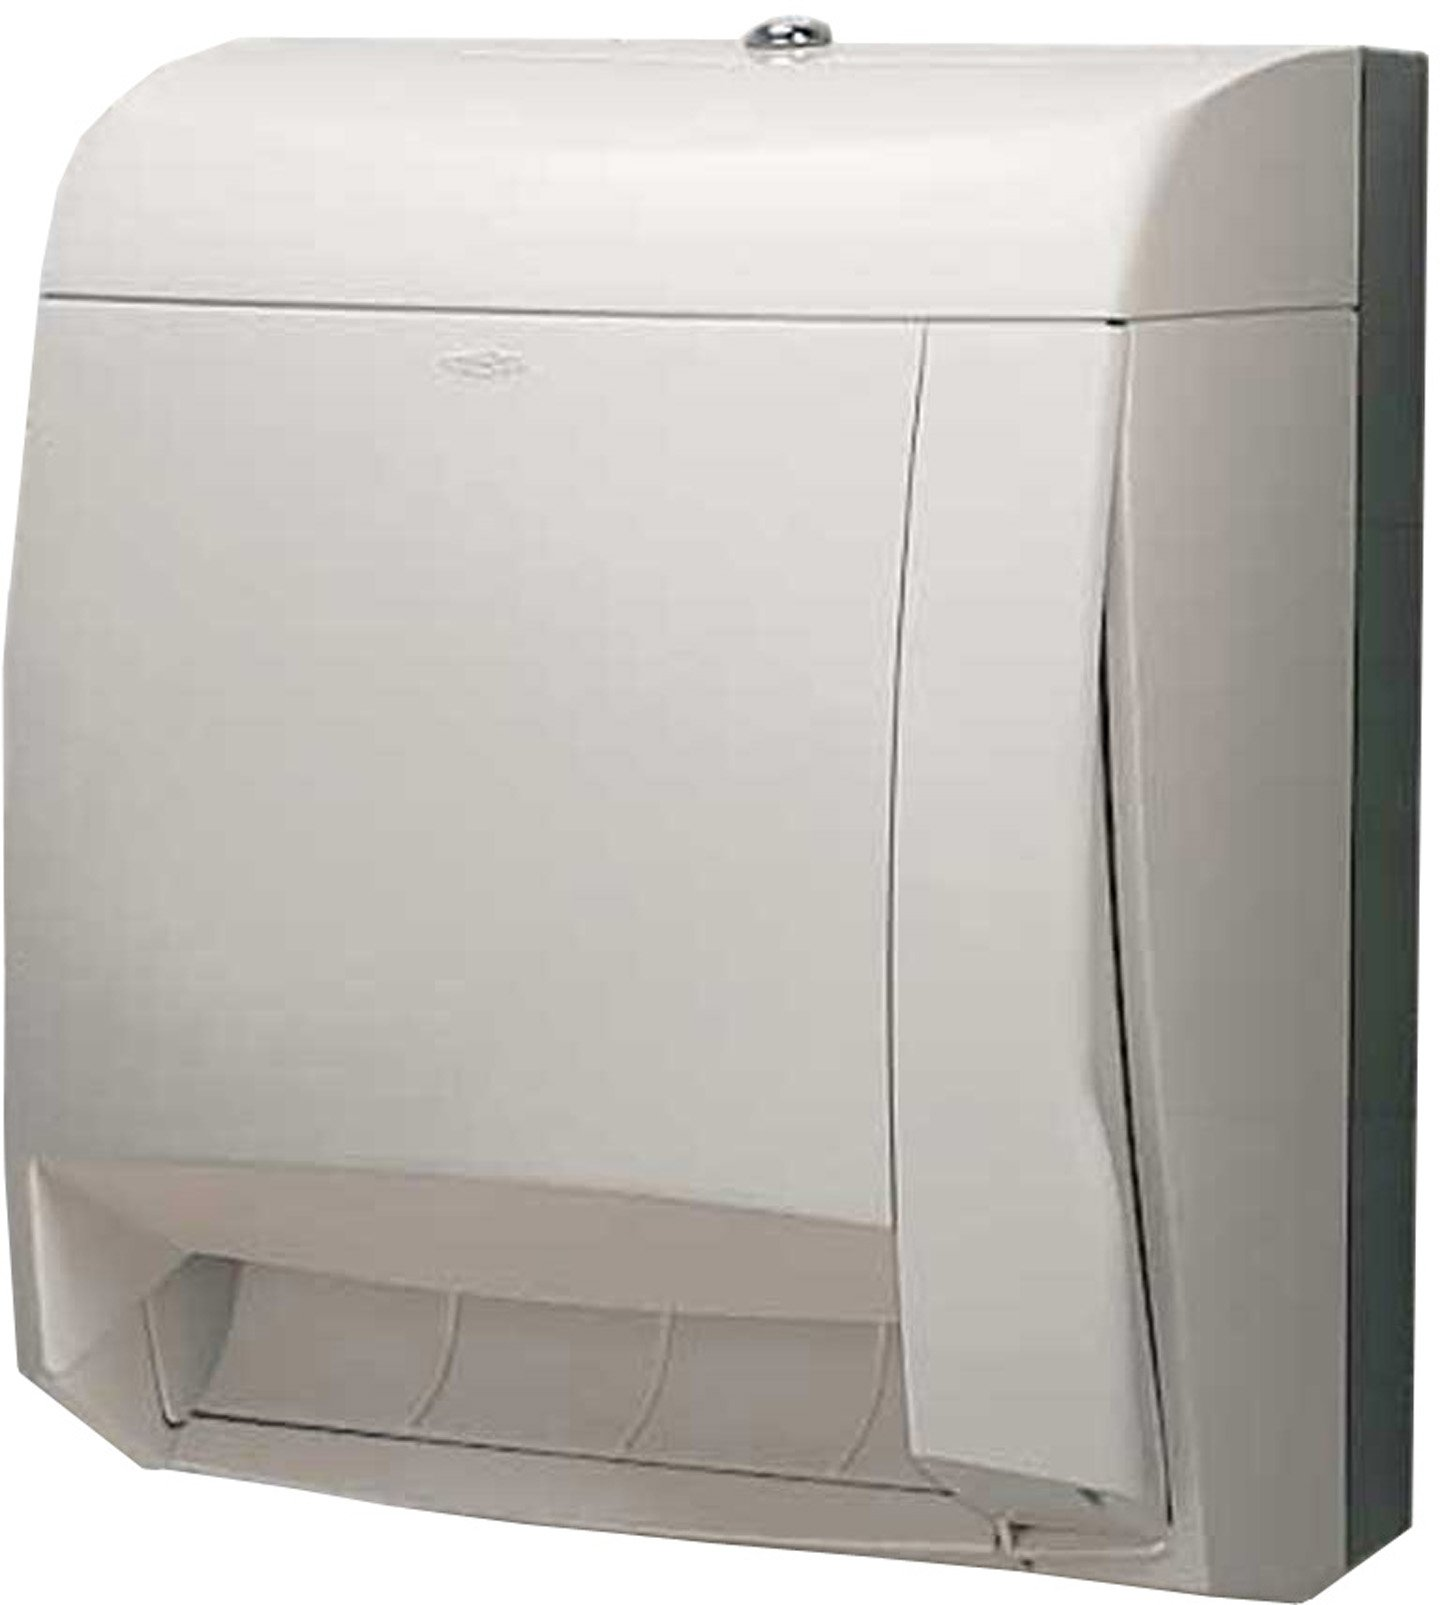 Bobrick 52860 MatrixSeries Plastic Surface Mounted Roll Paper Towel Dispenser, Gloss Finish, 11-5/8'' Width x 15-1/16'' Height